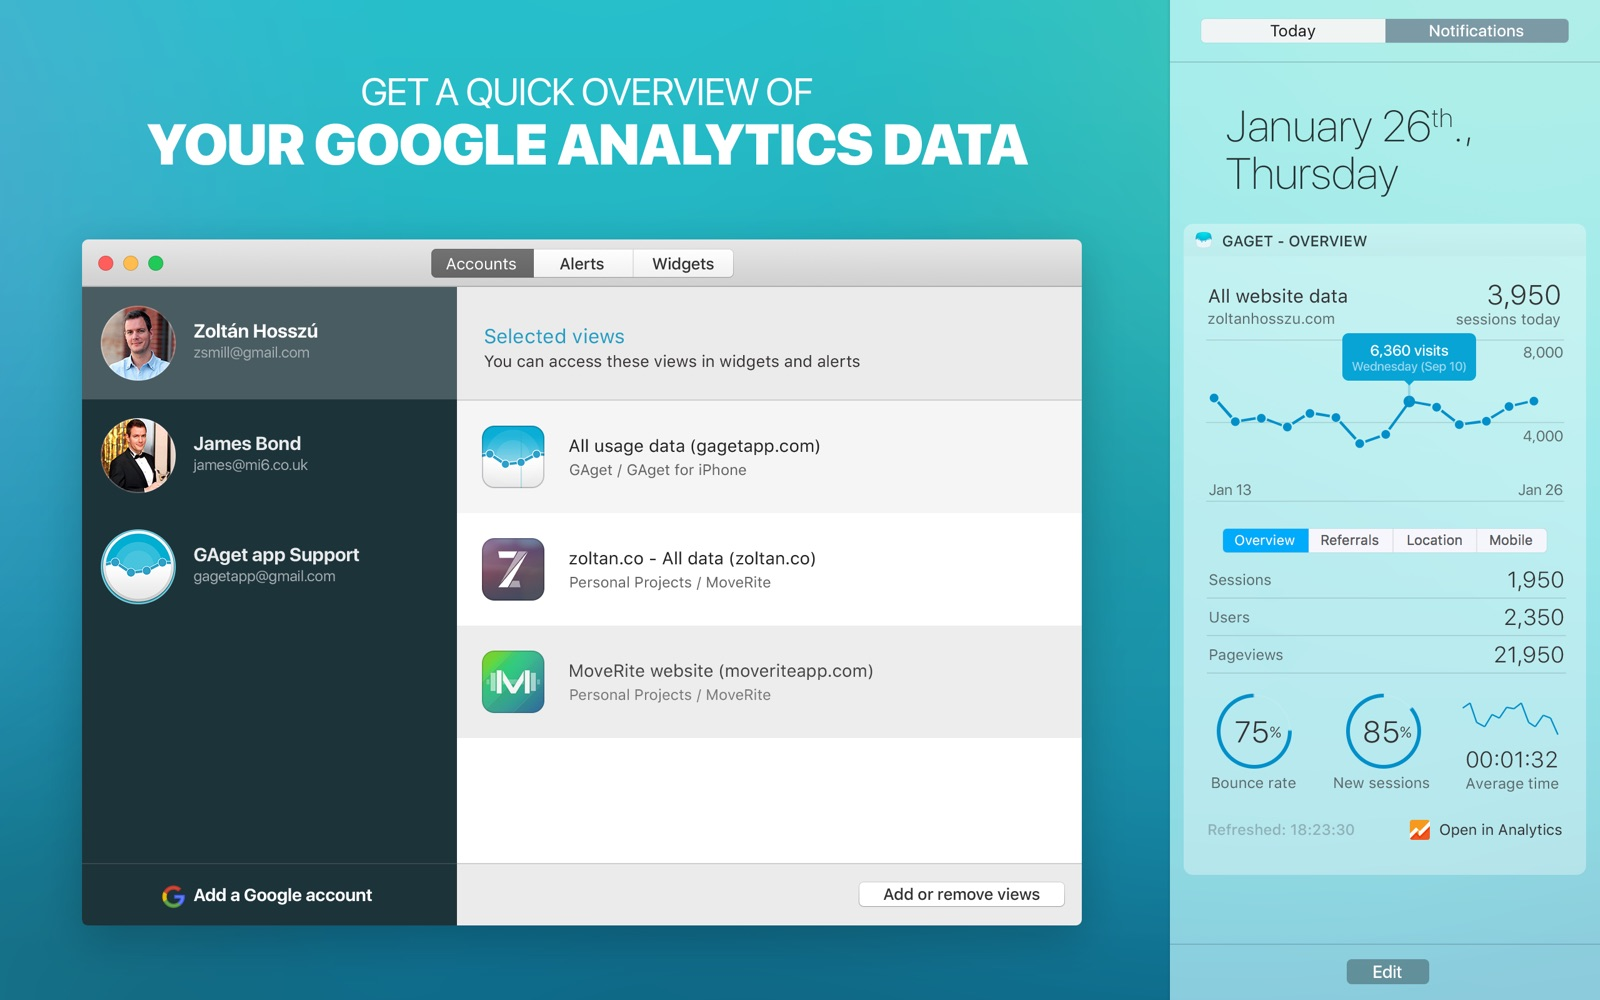 Get a quick overview of your Google Analytics data with GAget